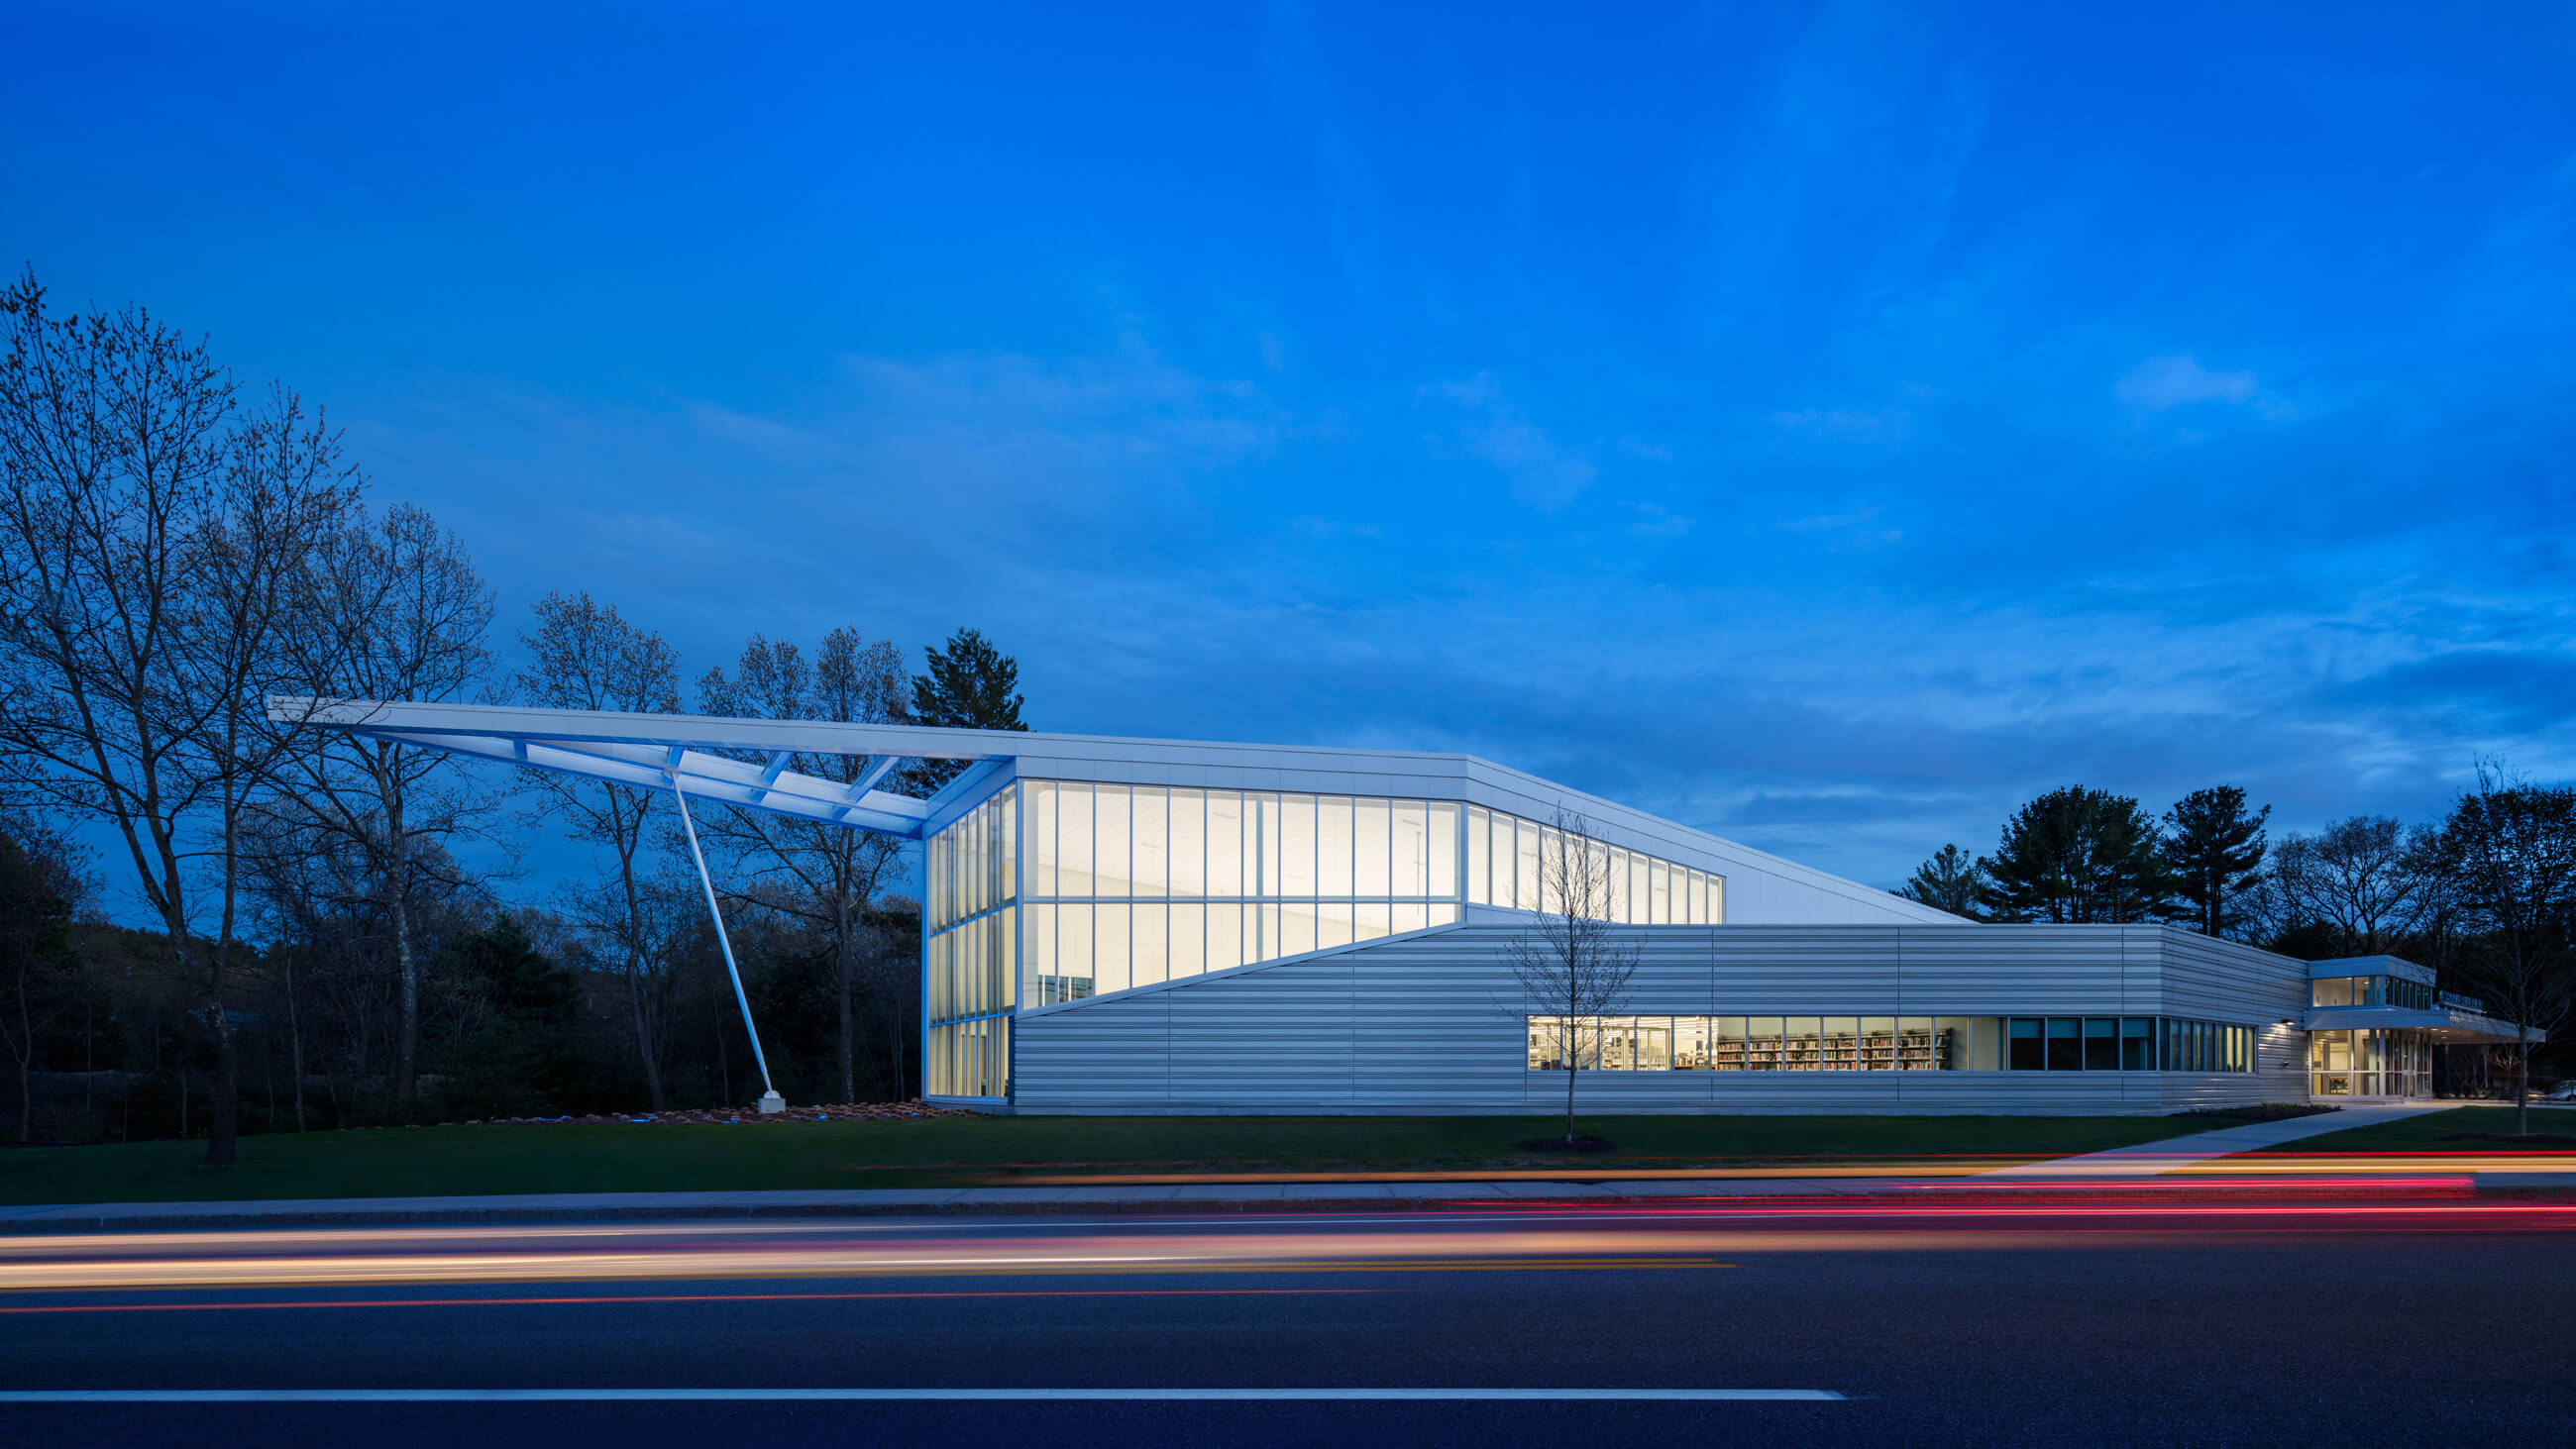 Horizontal view of the library from across the street with overhang protruding glass and light-filled structure